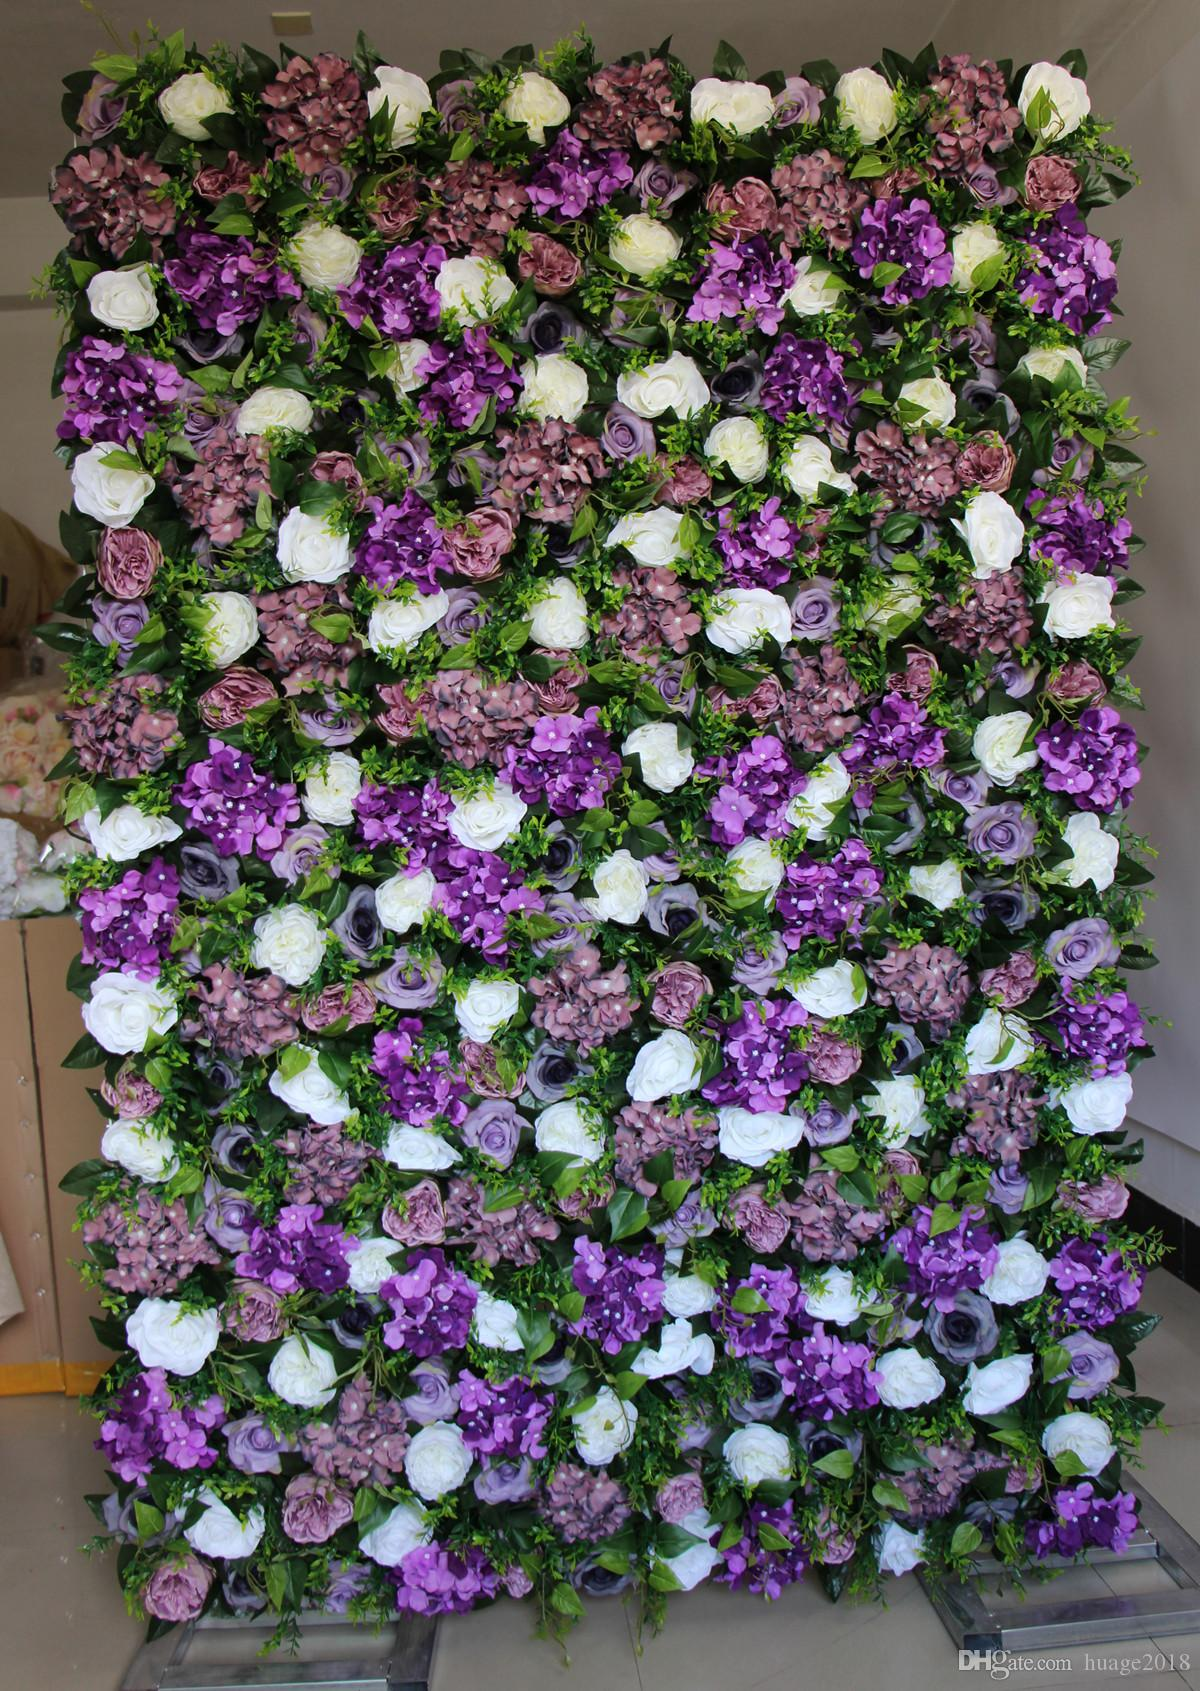 2021 Artificial Flower Wall Rose And Hydrangea Green Leaves Fake Flower Wedding Decorations Backdrop Ems From Huage2018 246 24 Dhgate Com